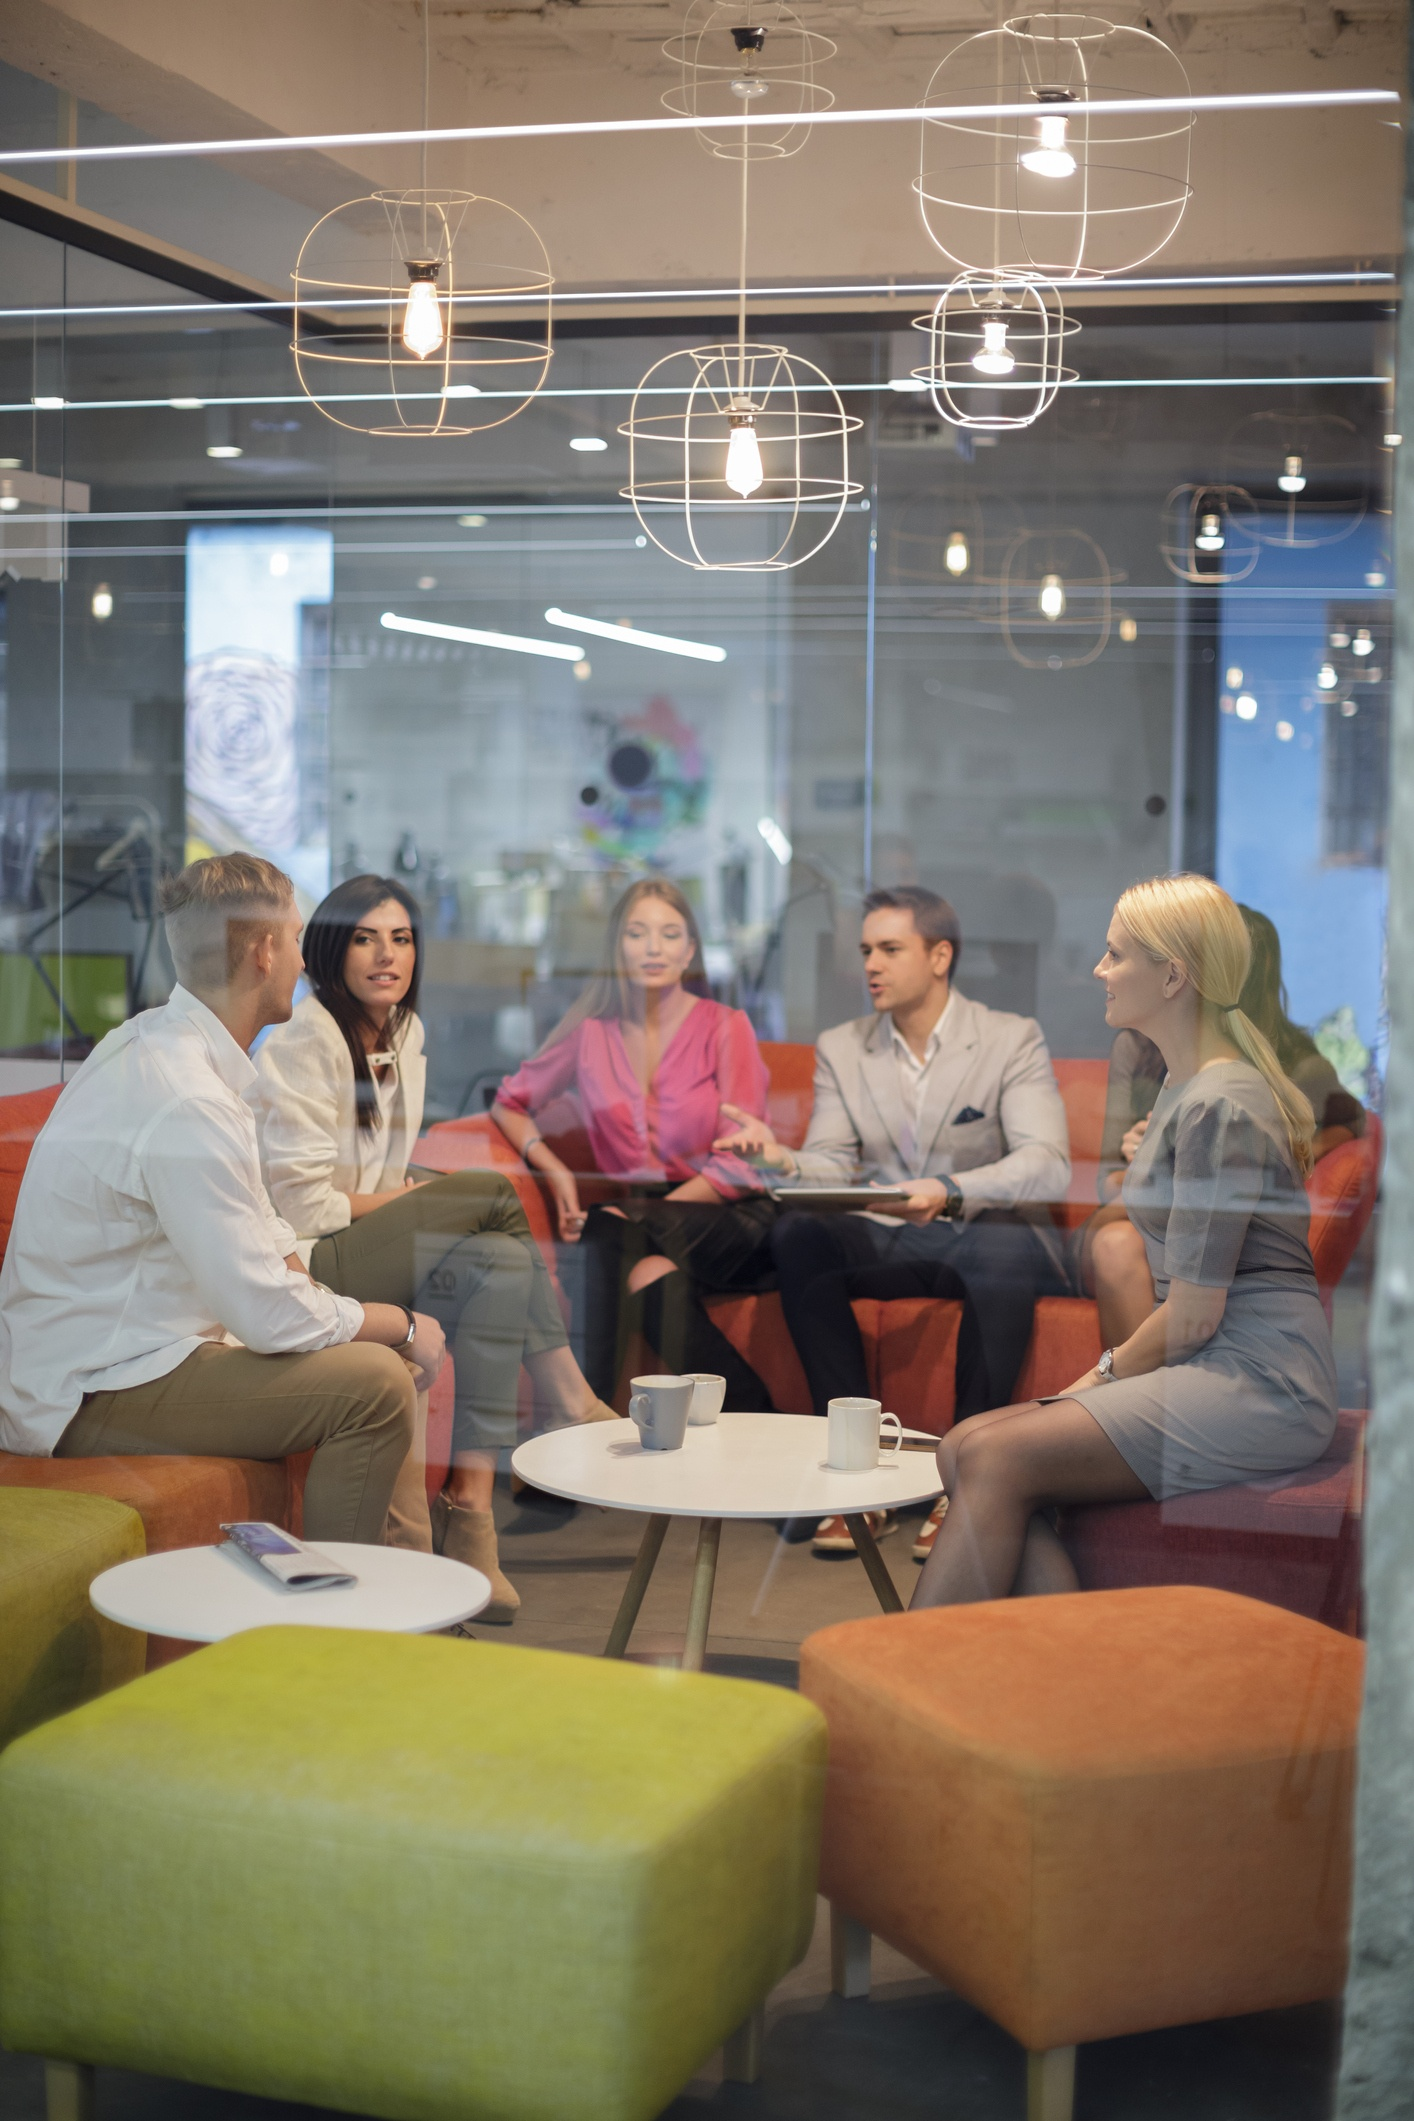 Providing a comfortable meeting space helps destress employees